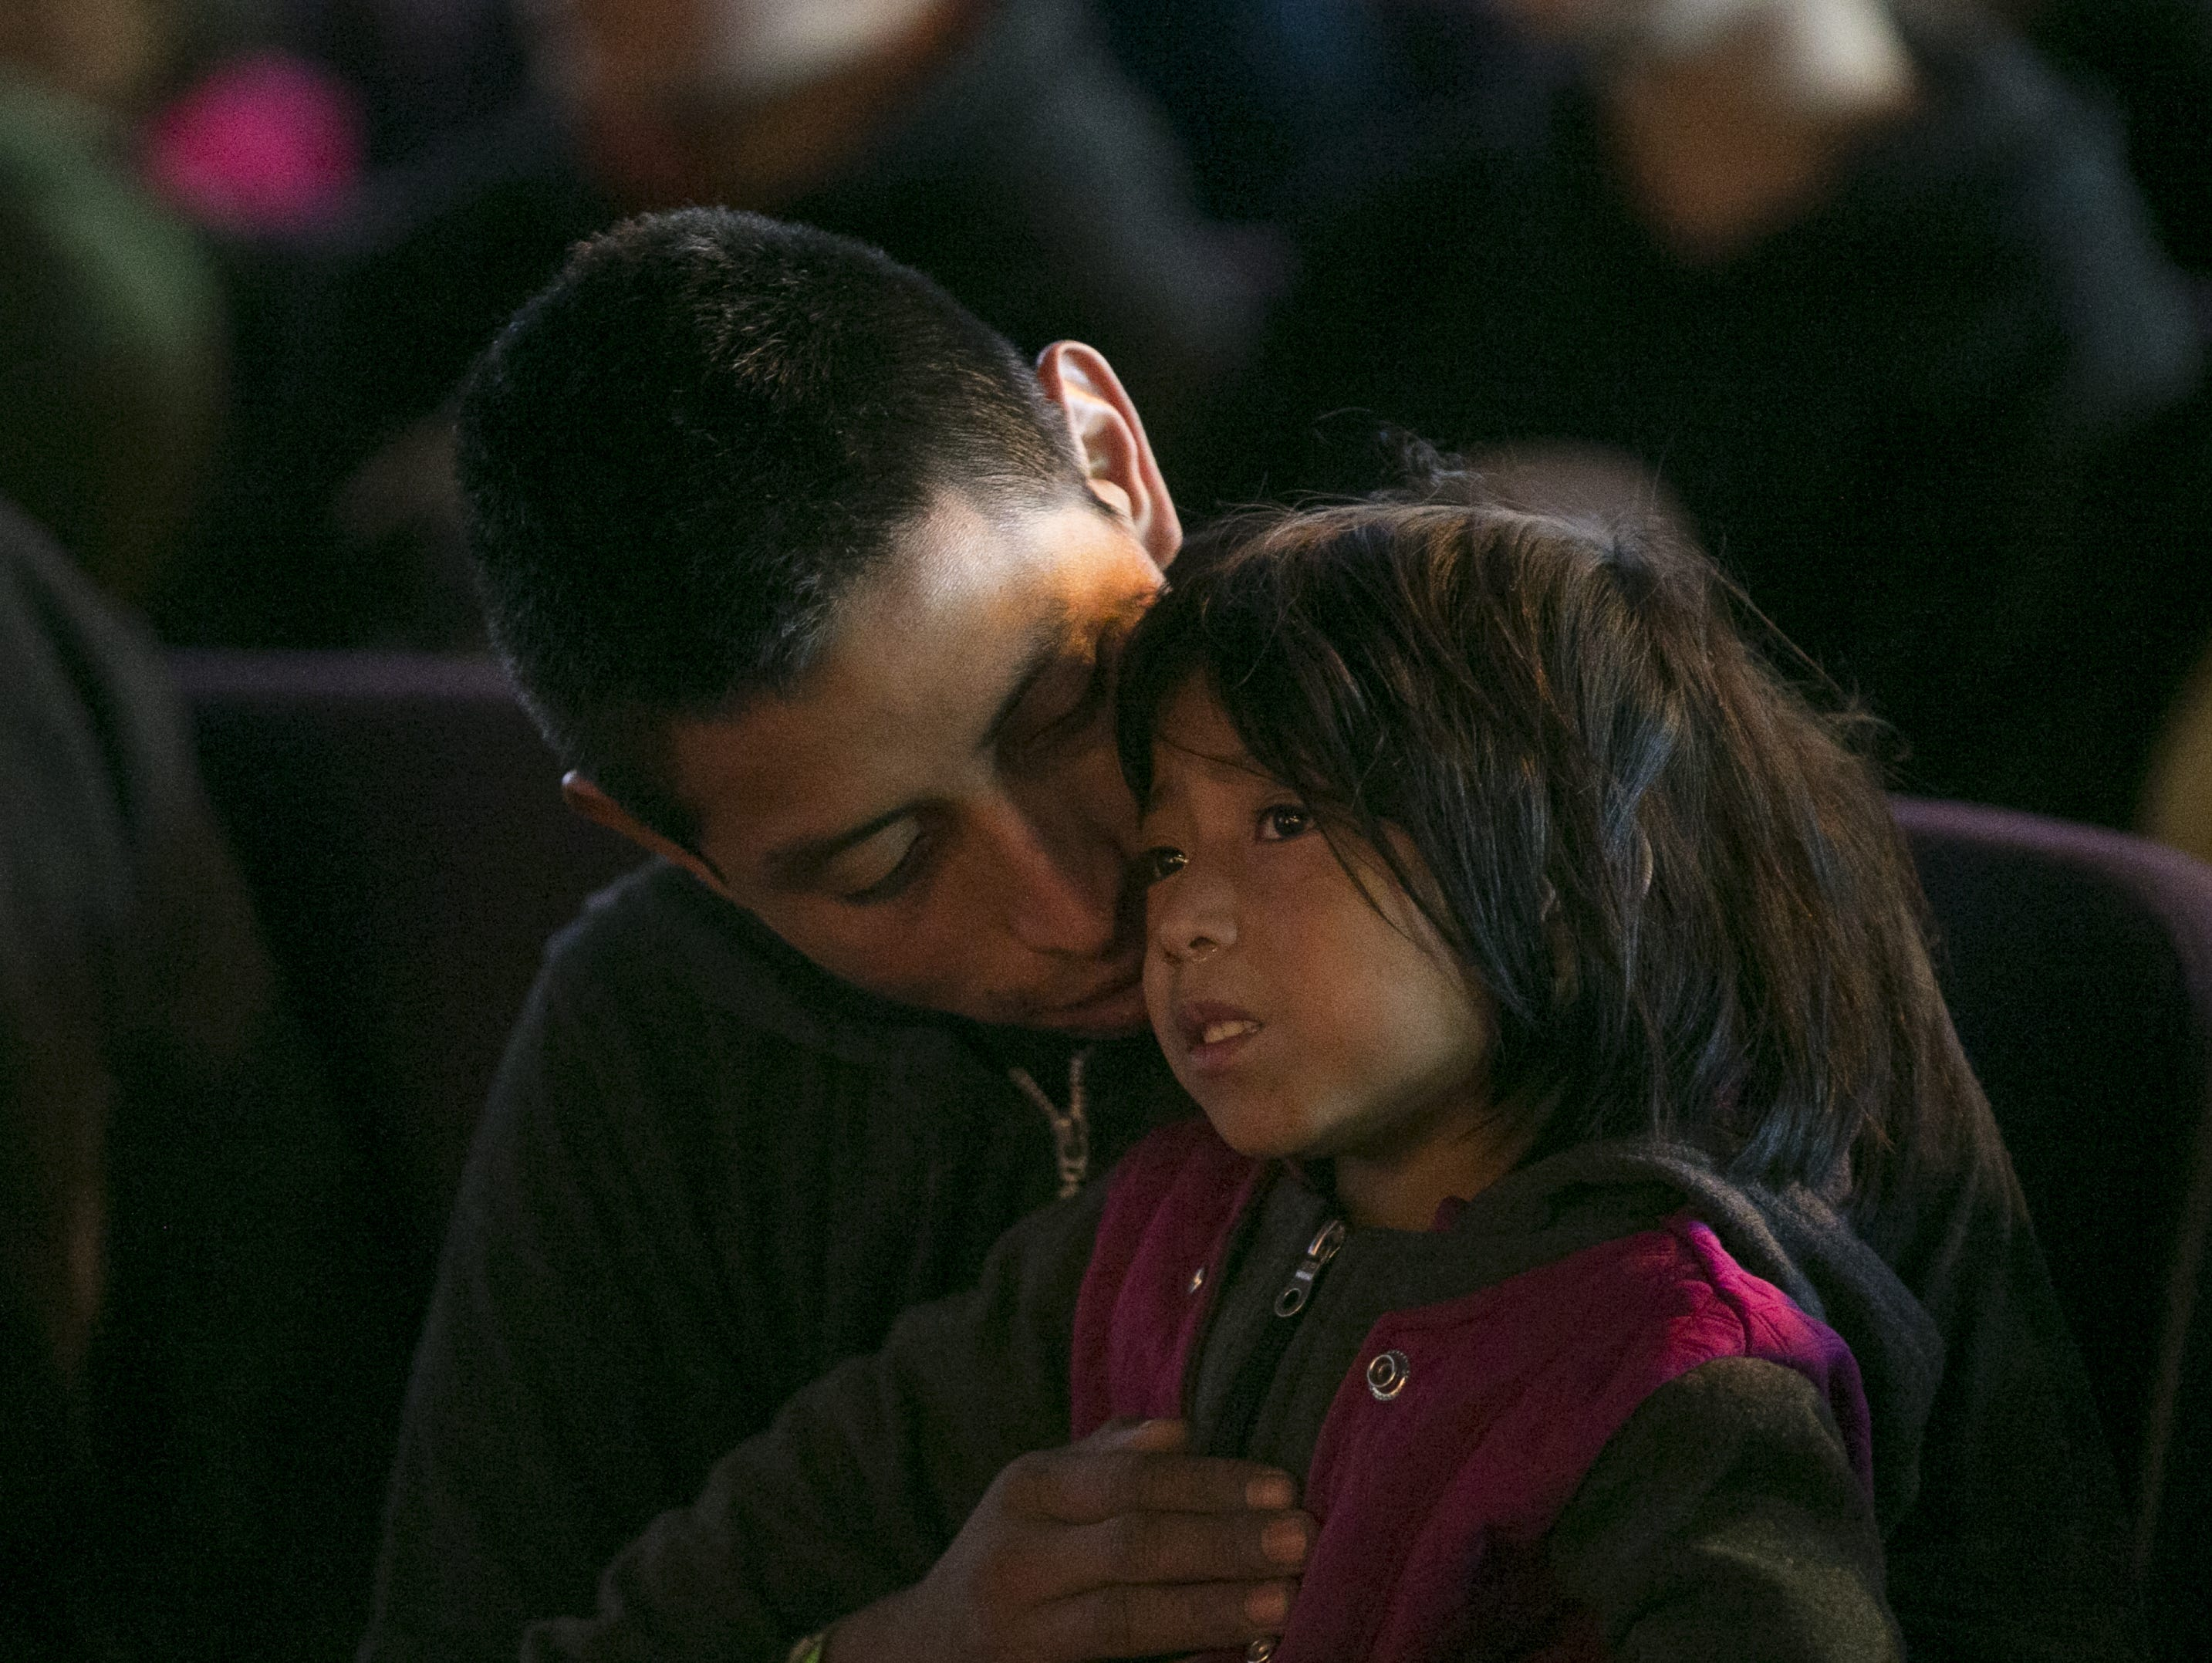 Guatemalan Asylum seeker Marcos Ramos Ortiz (left) holds his 4-year-old daughter Juana Ramos Gomez (right) at La Hermosa Church in Phoenix after being dropped off by U.S. Immigration Customs and Enforcement on Dec. 20, 2018.